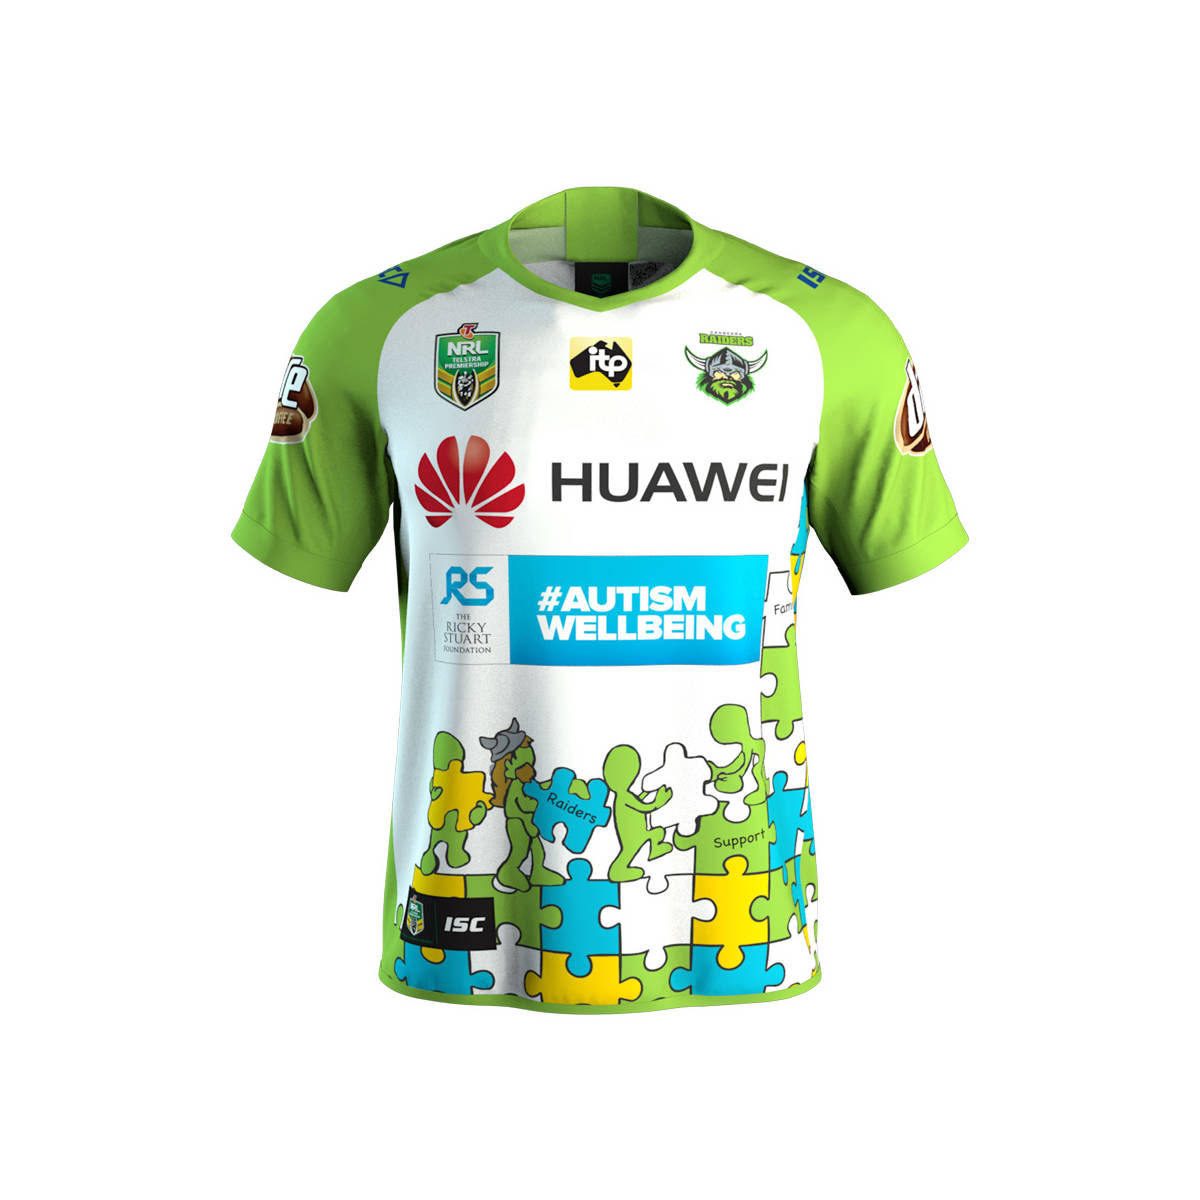 7229a8cf2 Canberra Raiders Shop – 2018 Kids Huawei Charity Jersey